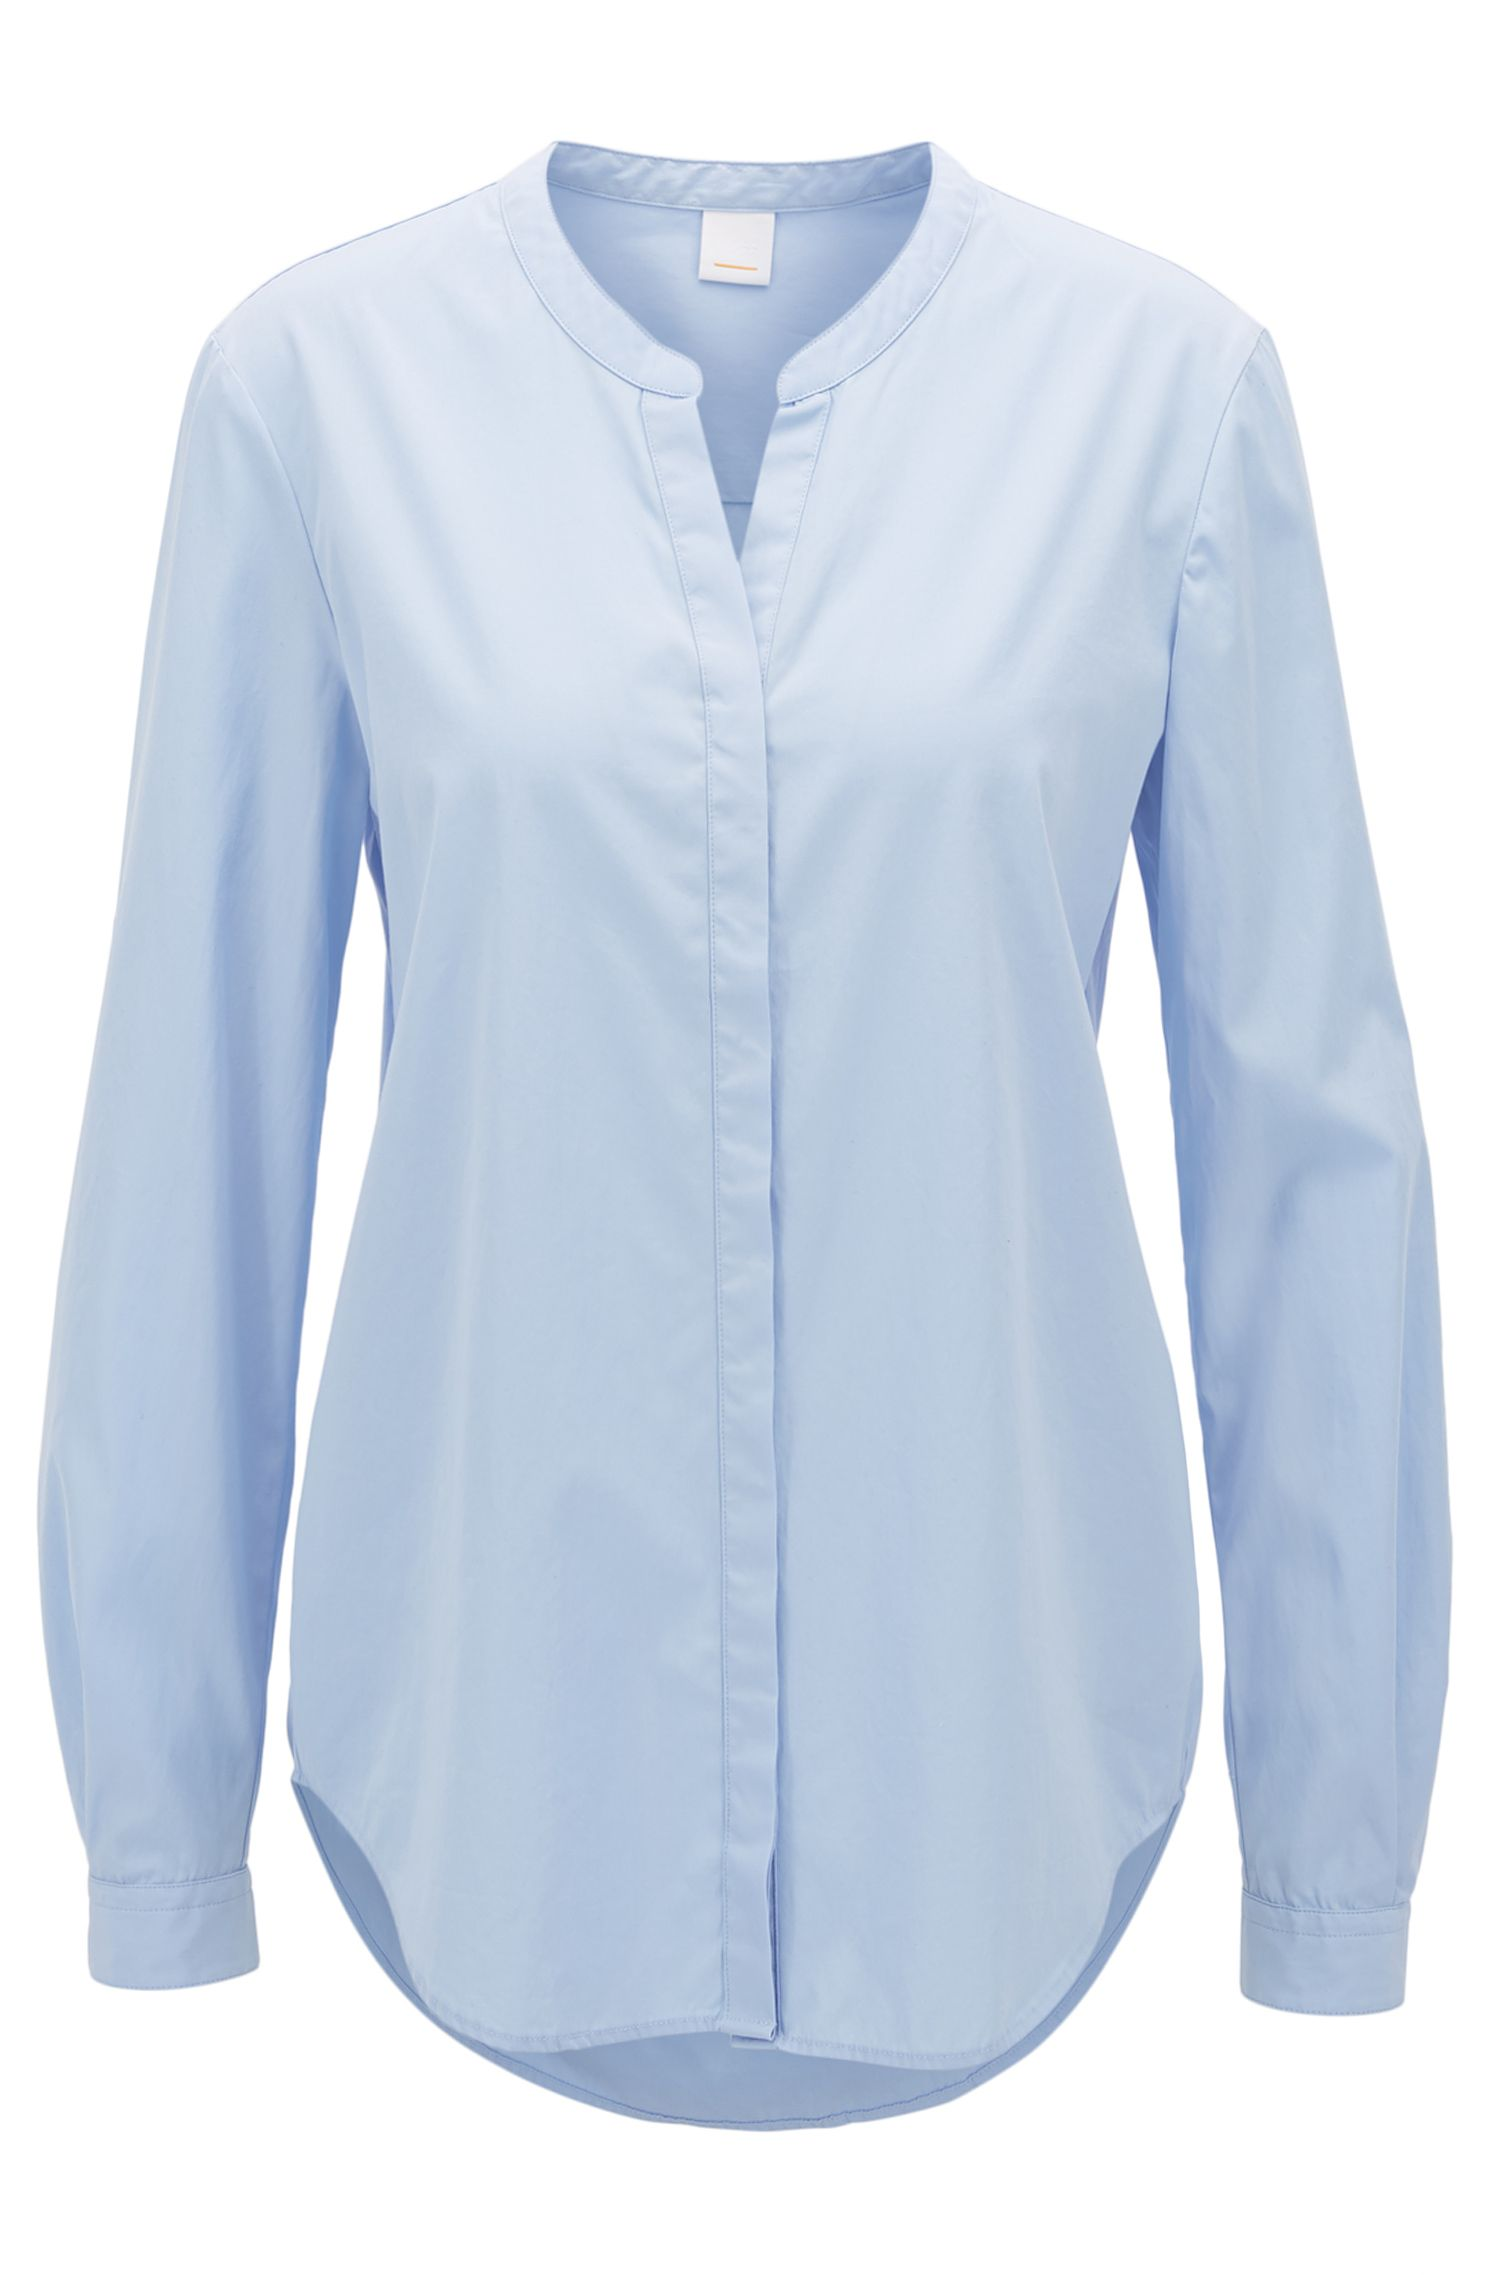 Relaxed-fit blouse in garment-washed cotton